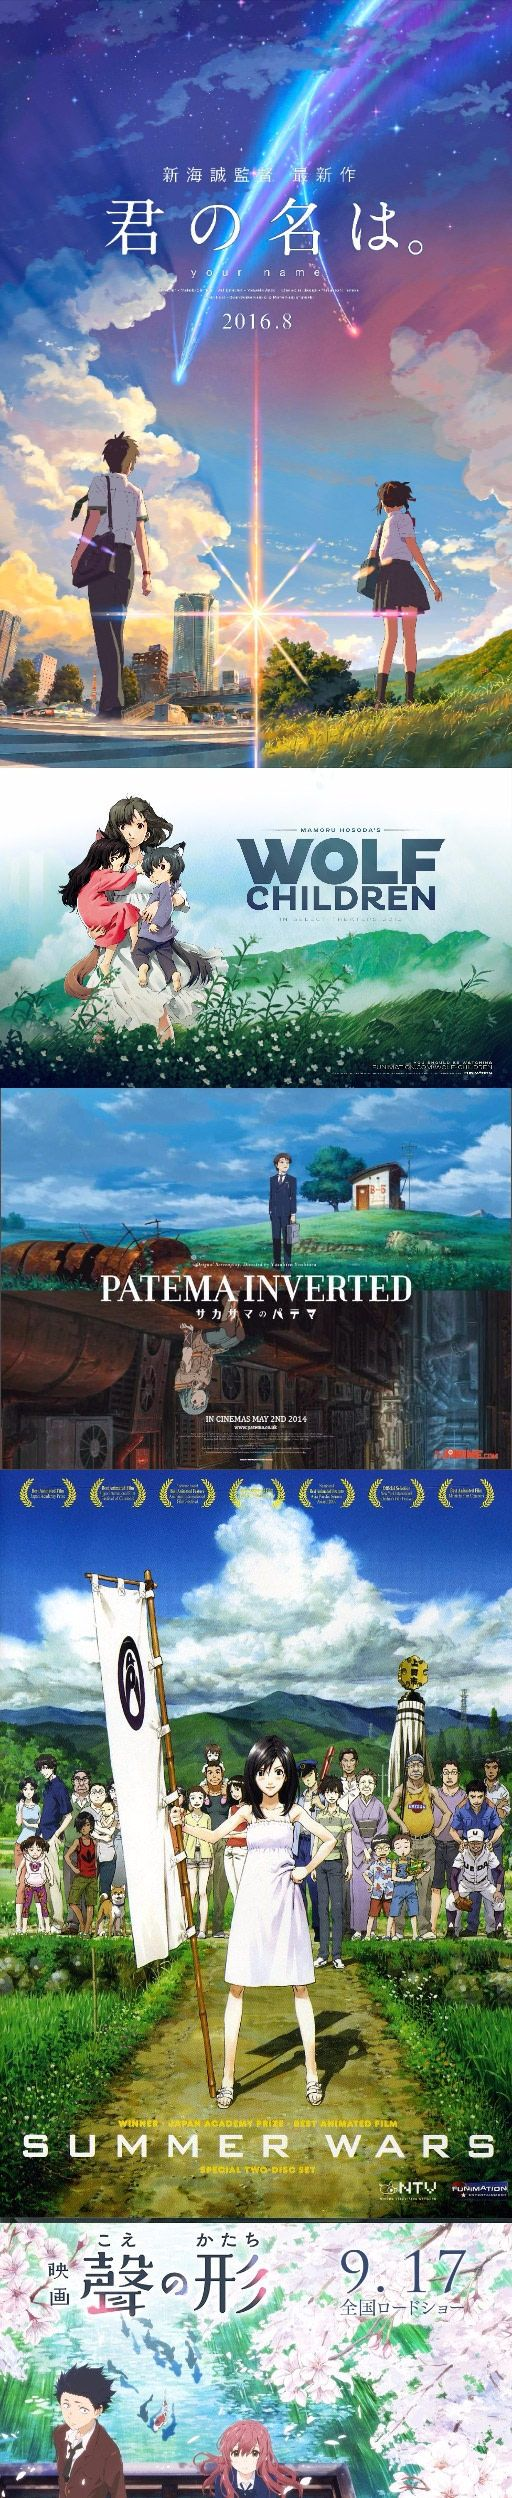 Top 5 heart warming anime movies recommendation that could change your life >>>Ahhhh!  I've seen wolf children and it was so good